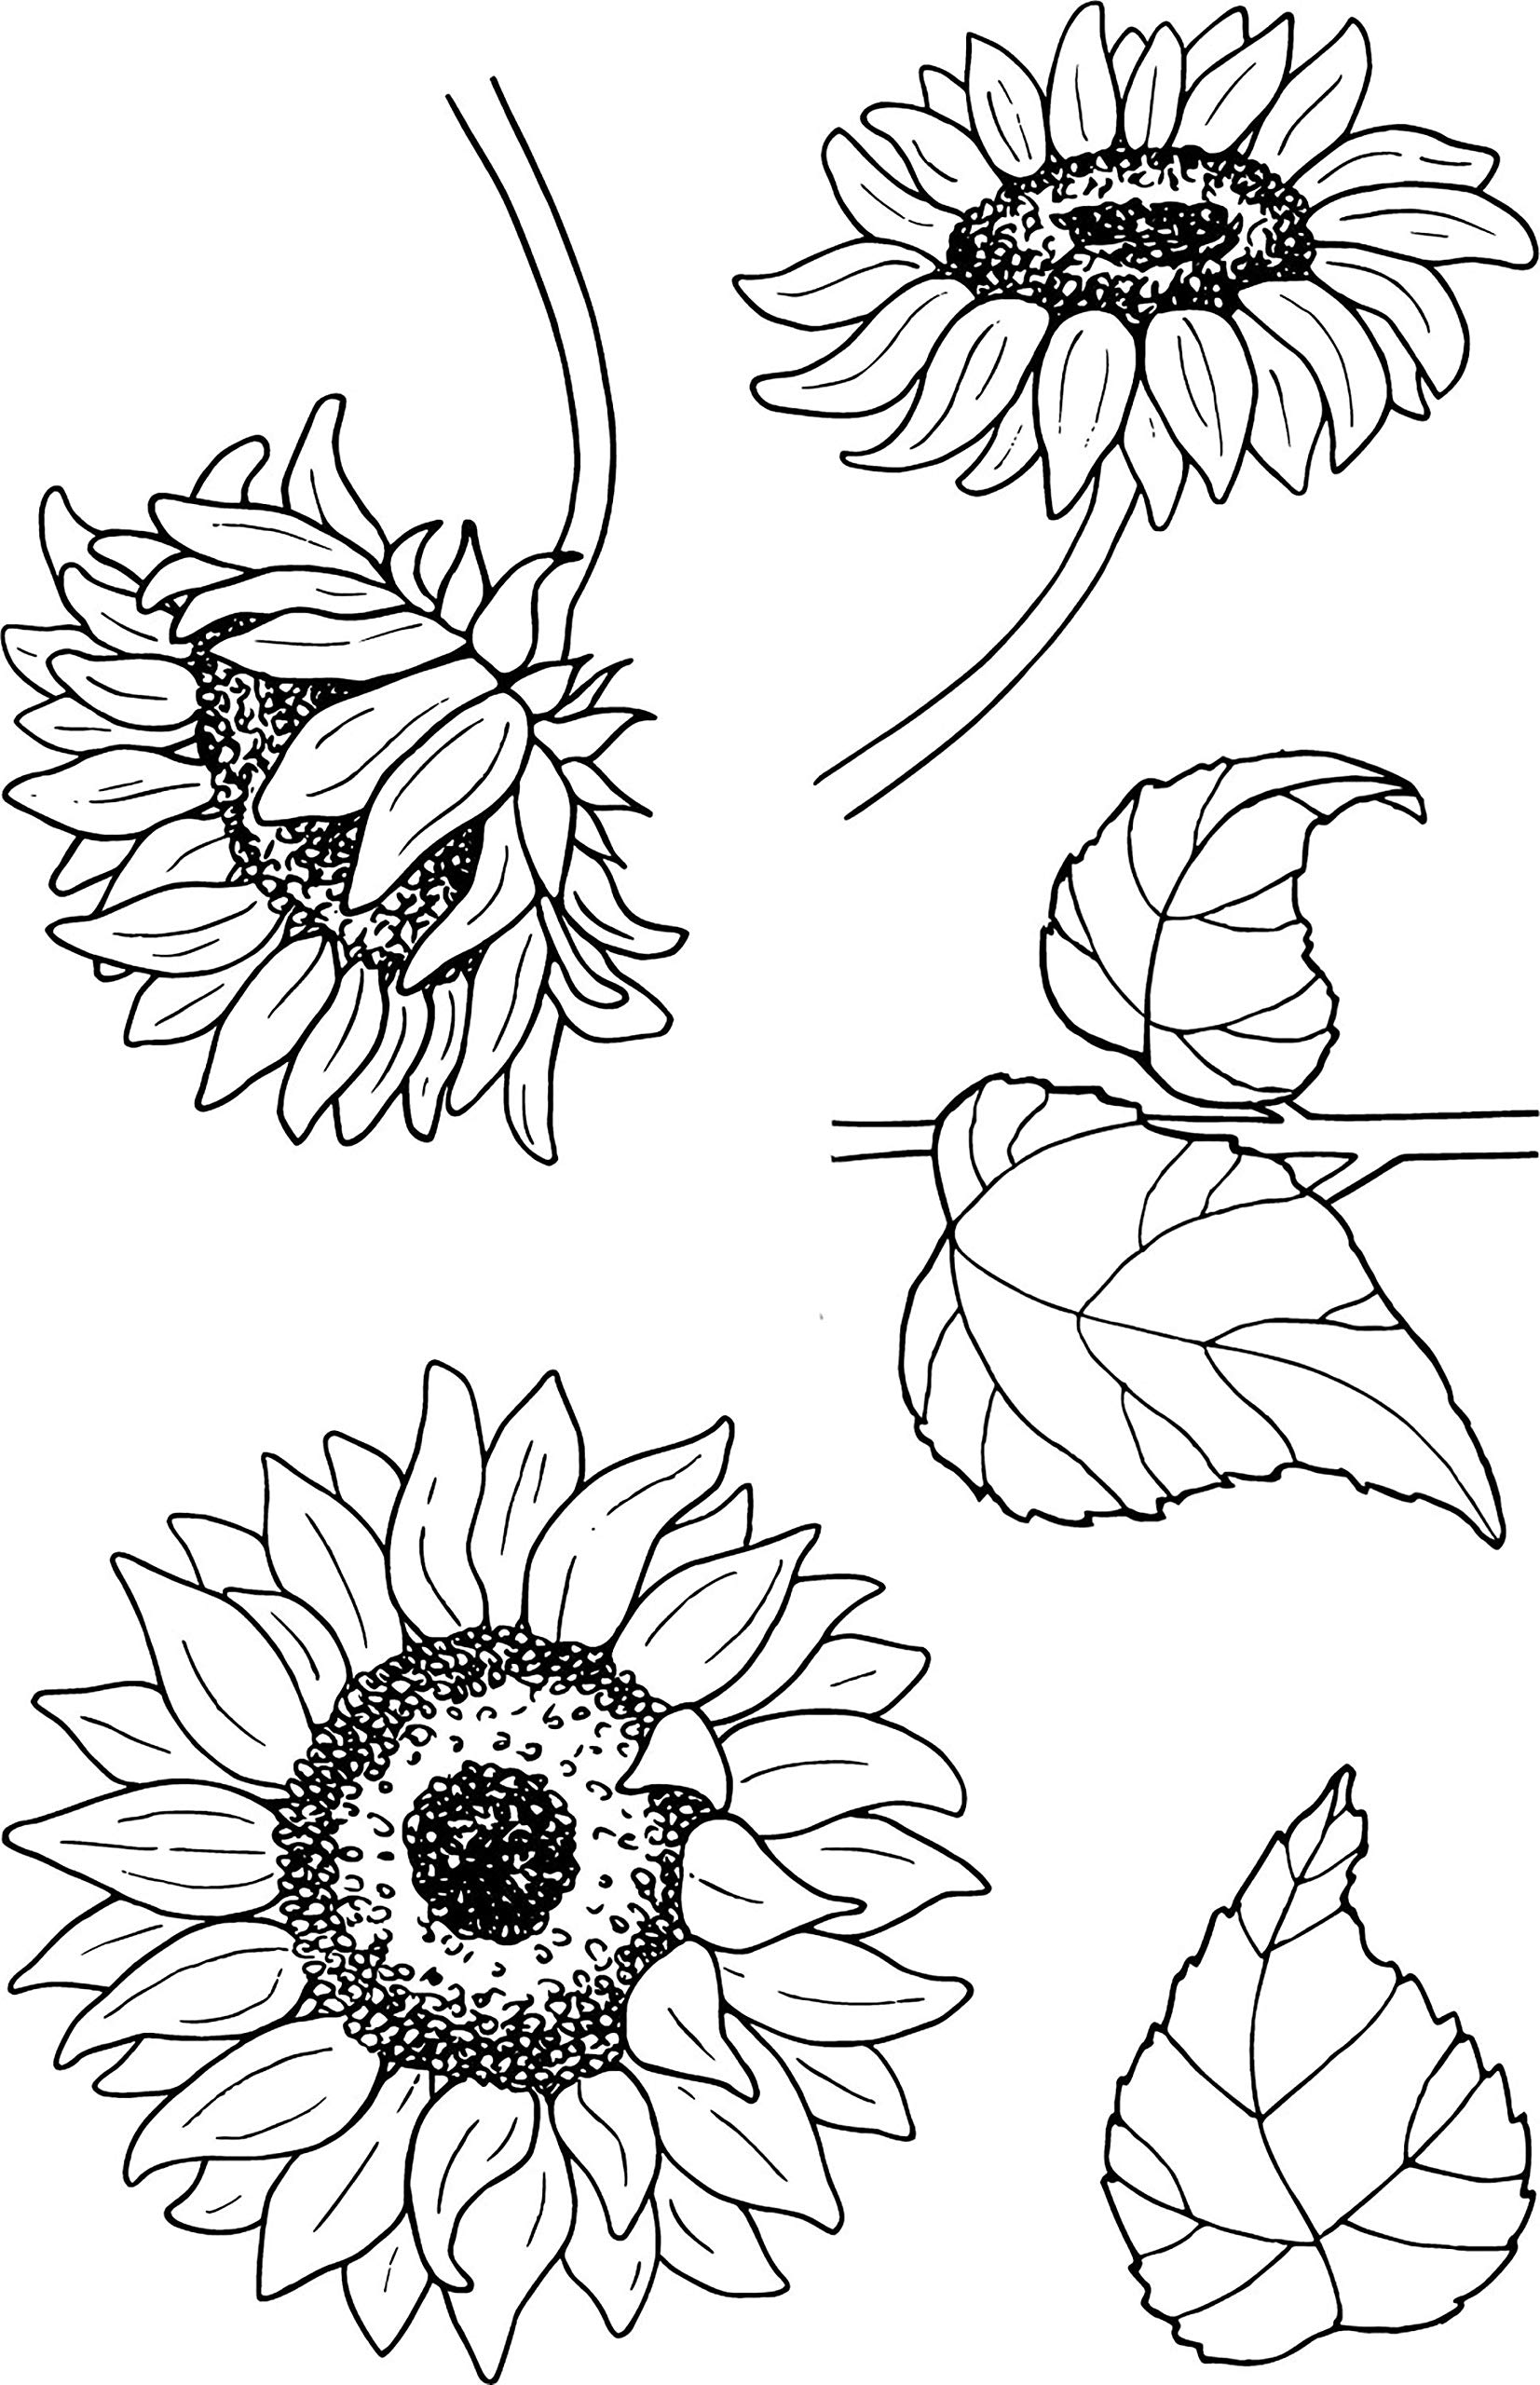 Jane's Doodles Clear Stamps 4''x6''-sunflowers by Jane's Doodles (Image #1)